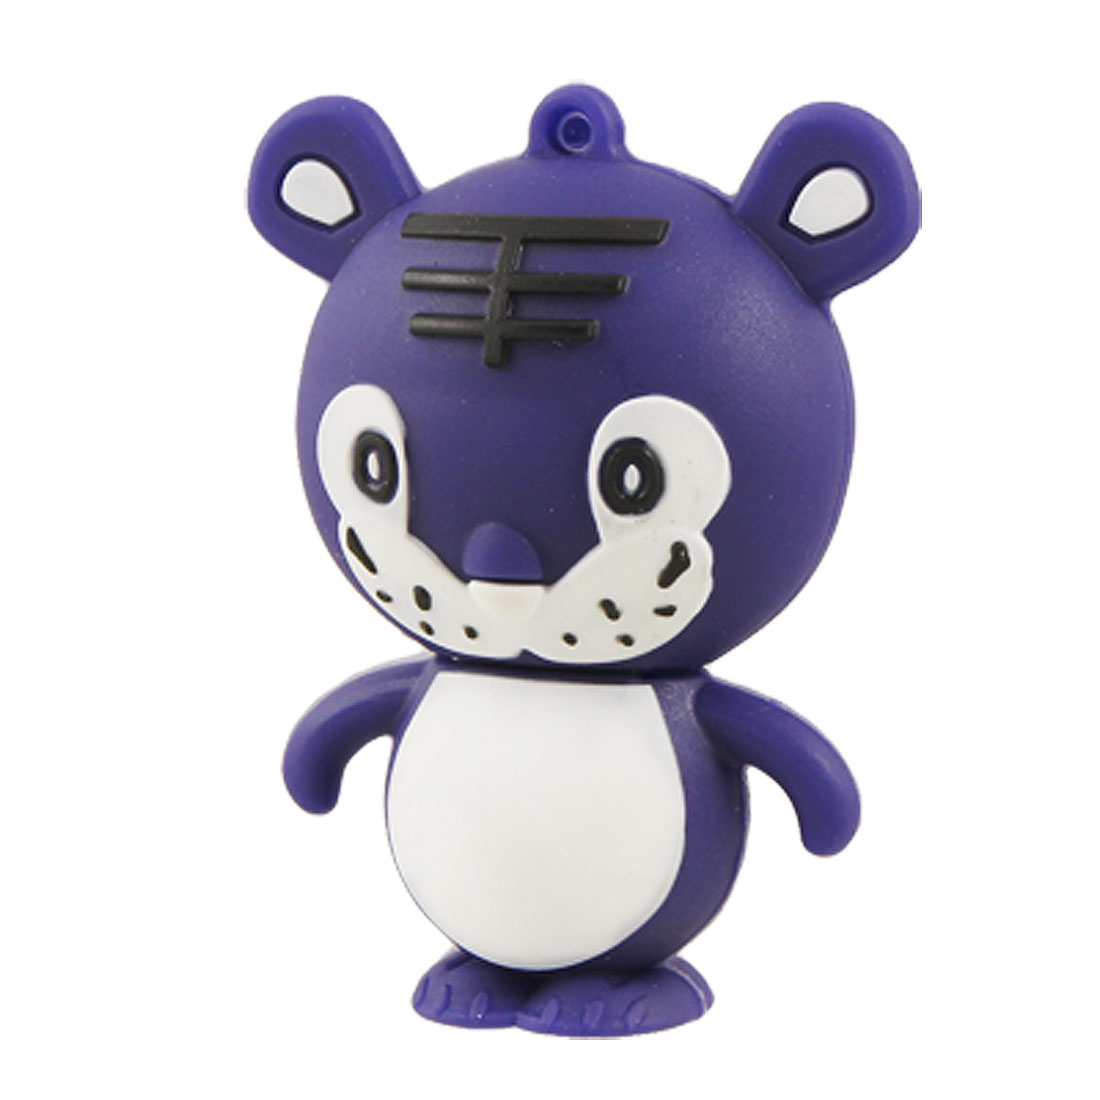 USB 2.0 Puple White Tiger Shape T-Flash Memory Card Reader